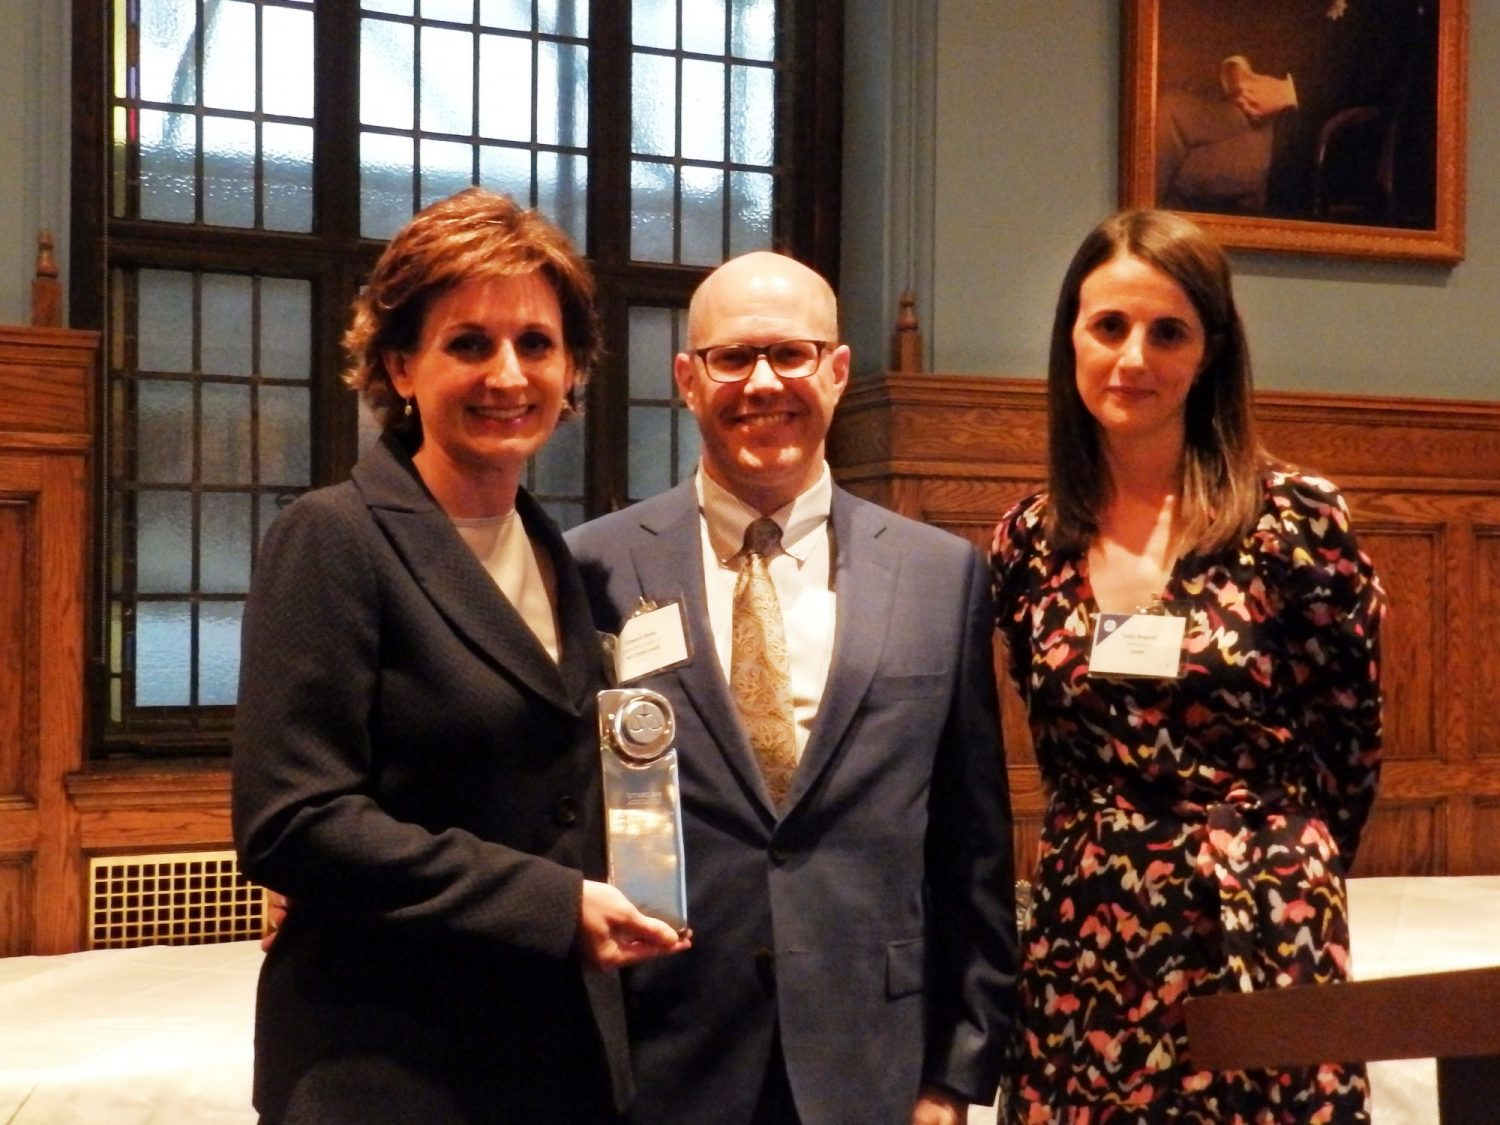 Sandra Astolfo holds OBA Construction and Infrastructure Law Award of Excellence